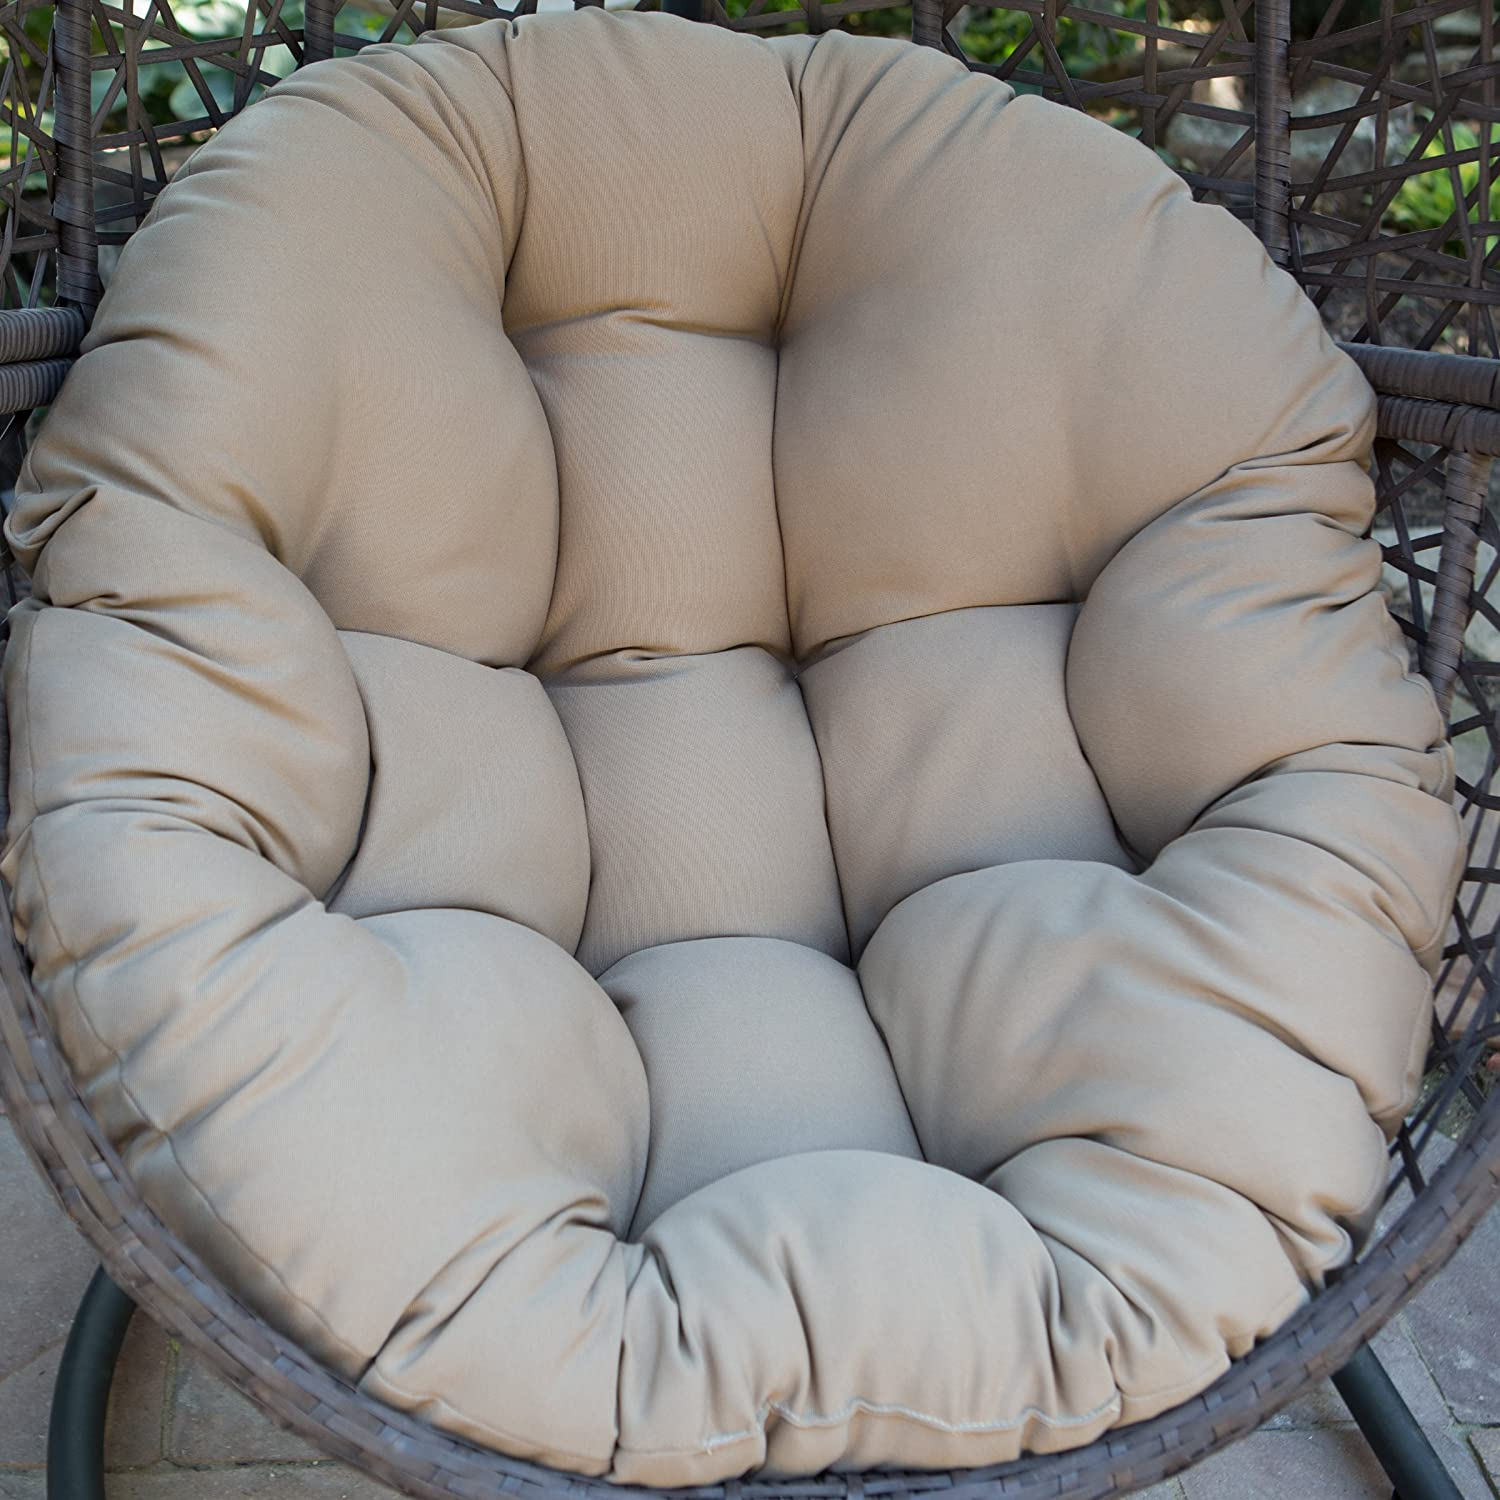 Amazon.com : Resin Wicker Espresso Hanging Egg Chair With Tufted Khaki  Cushion And Stand : Garden U0026 Outdoor